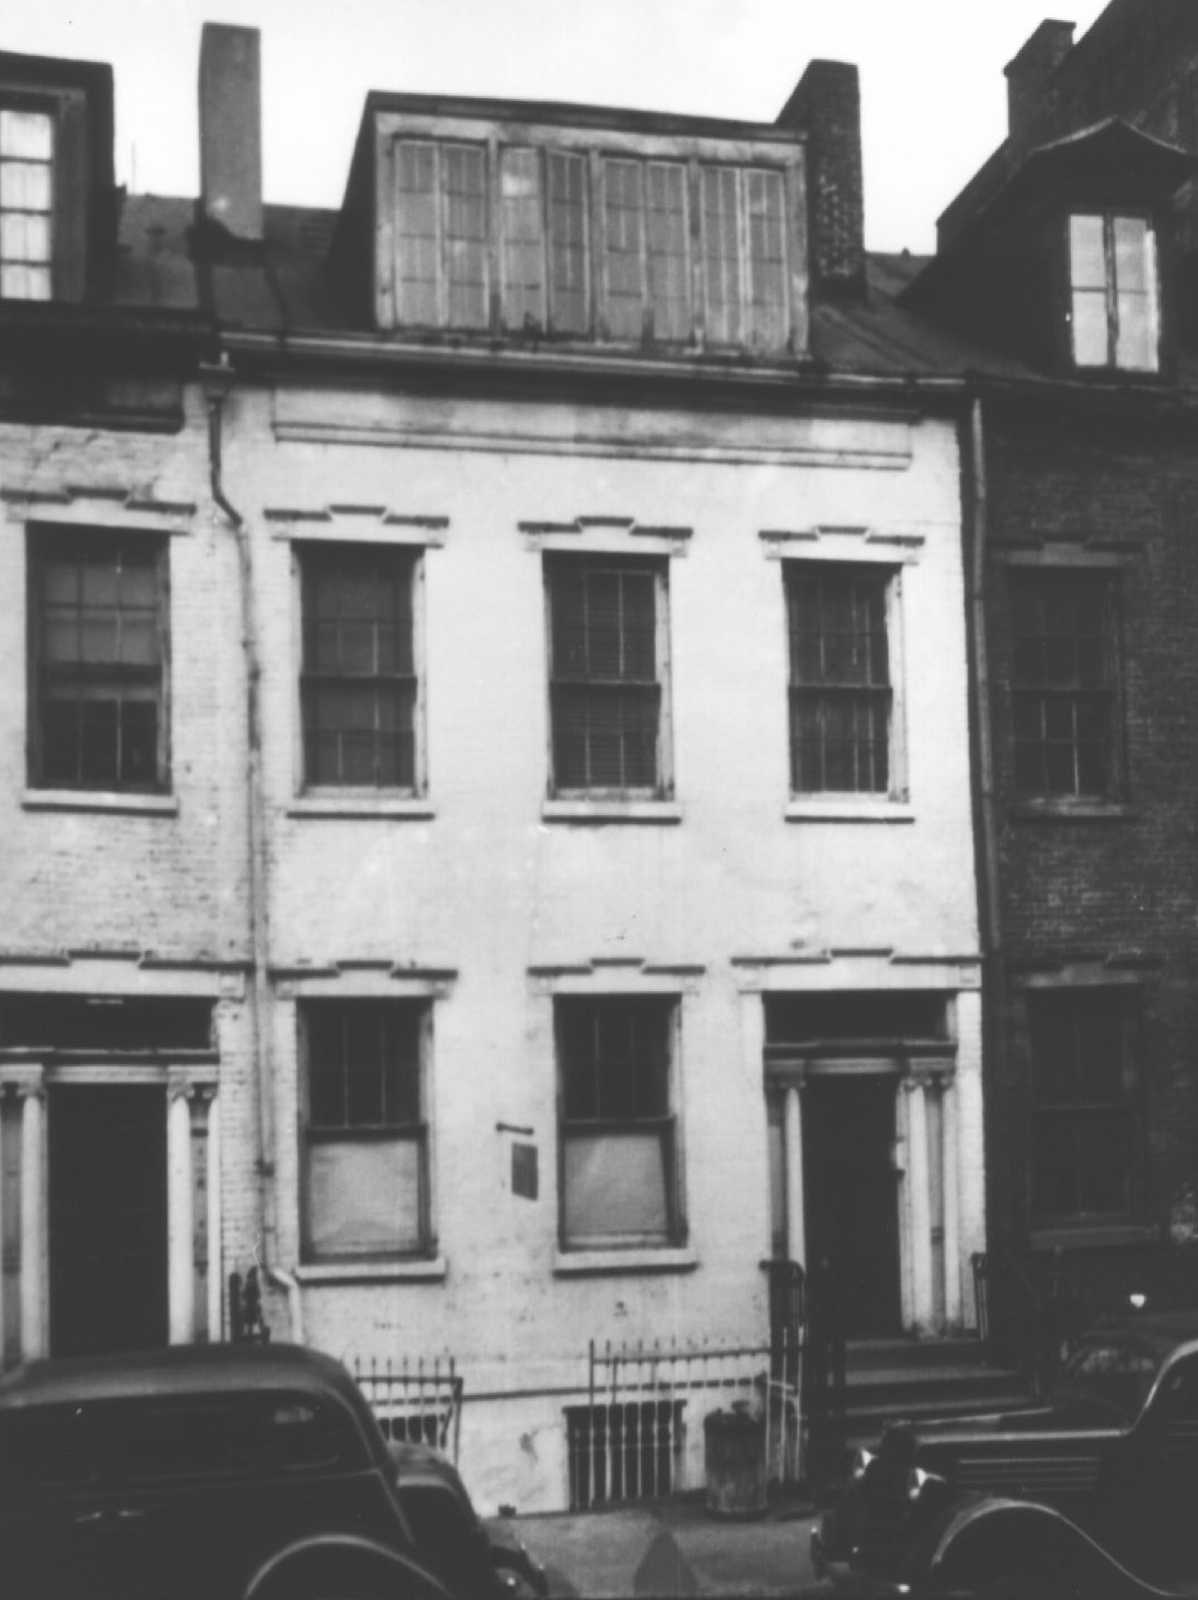 The building as it appeared in the 1930s